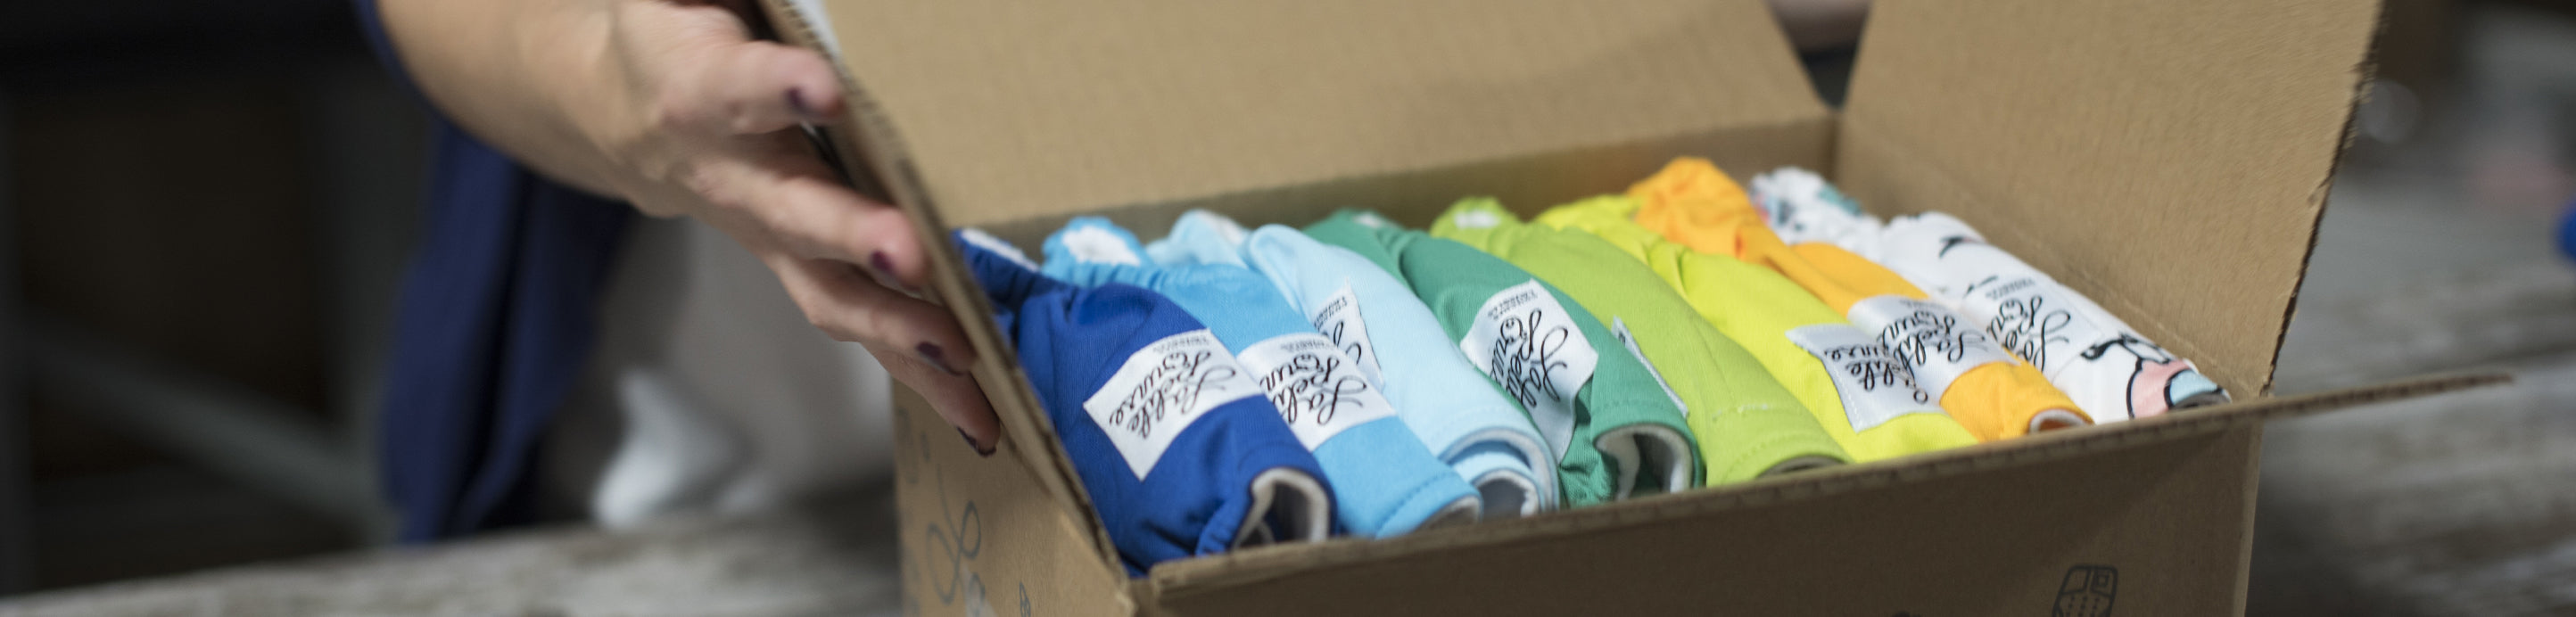 la petite ourse baby cloth diapers